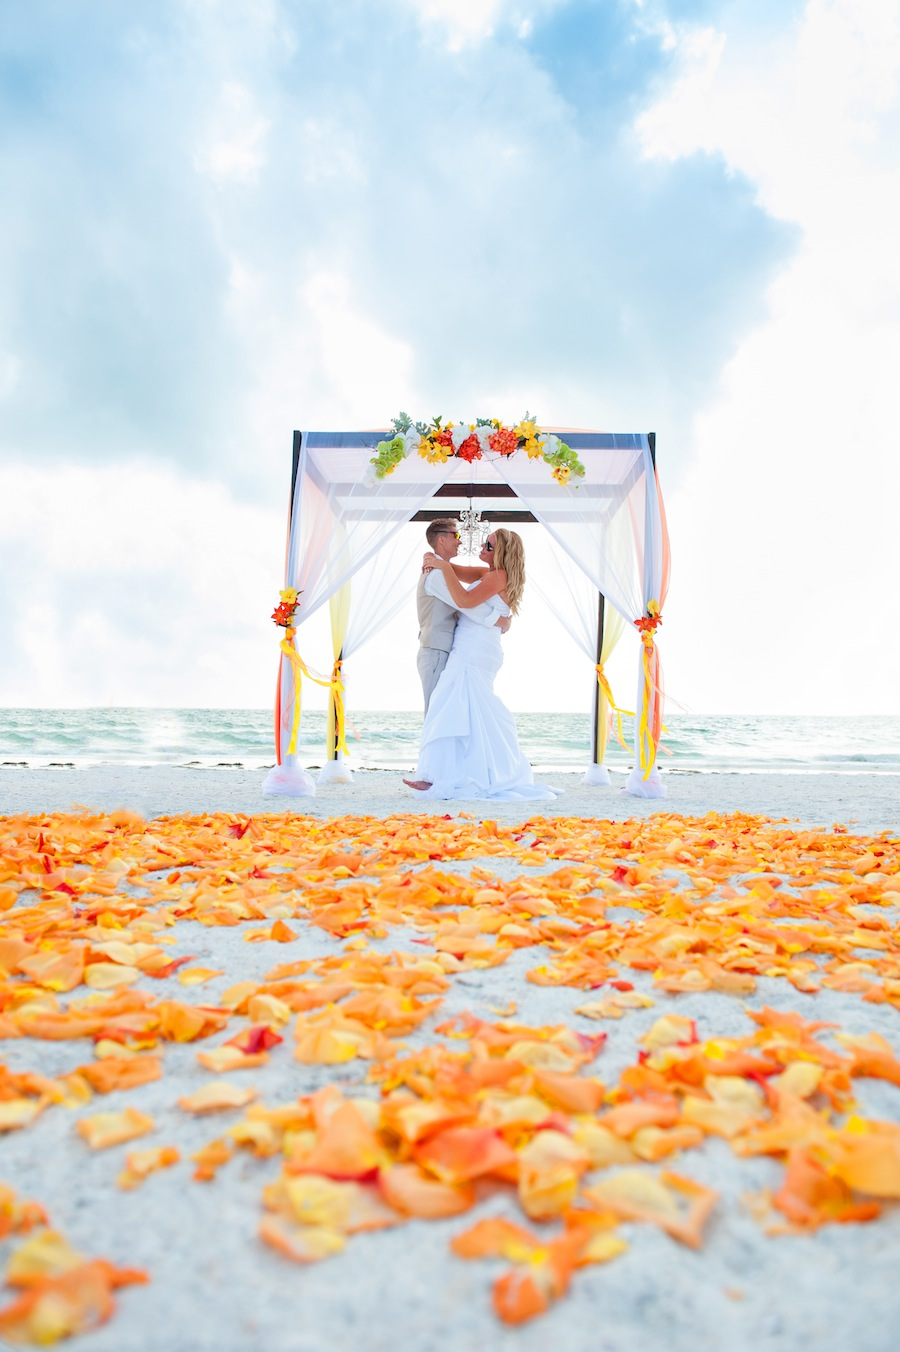 Orange and Red Beach Wedding Ceremony with Wooden Alter and Chandelier   Tide the Knot Beach Weddings